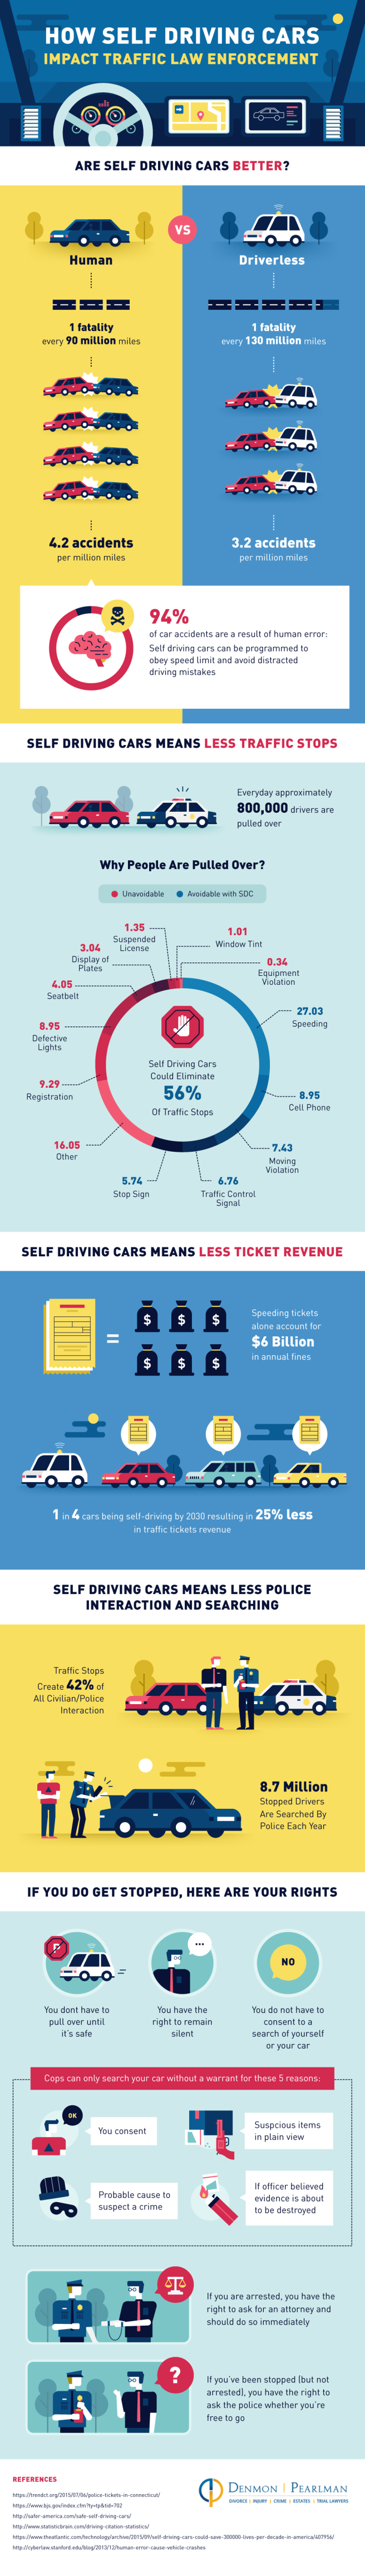 Self-Driving-Cars-Infographic-PNG